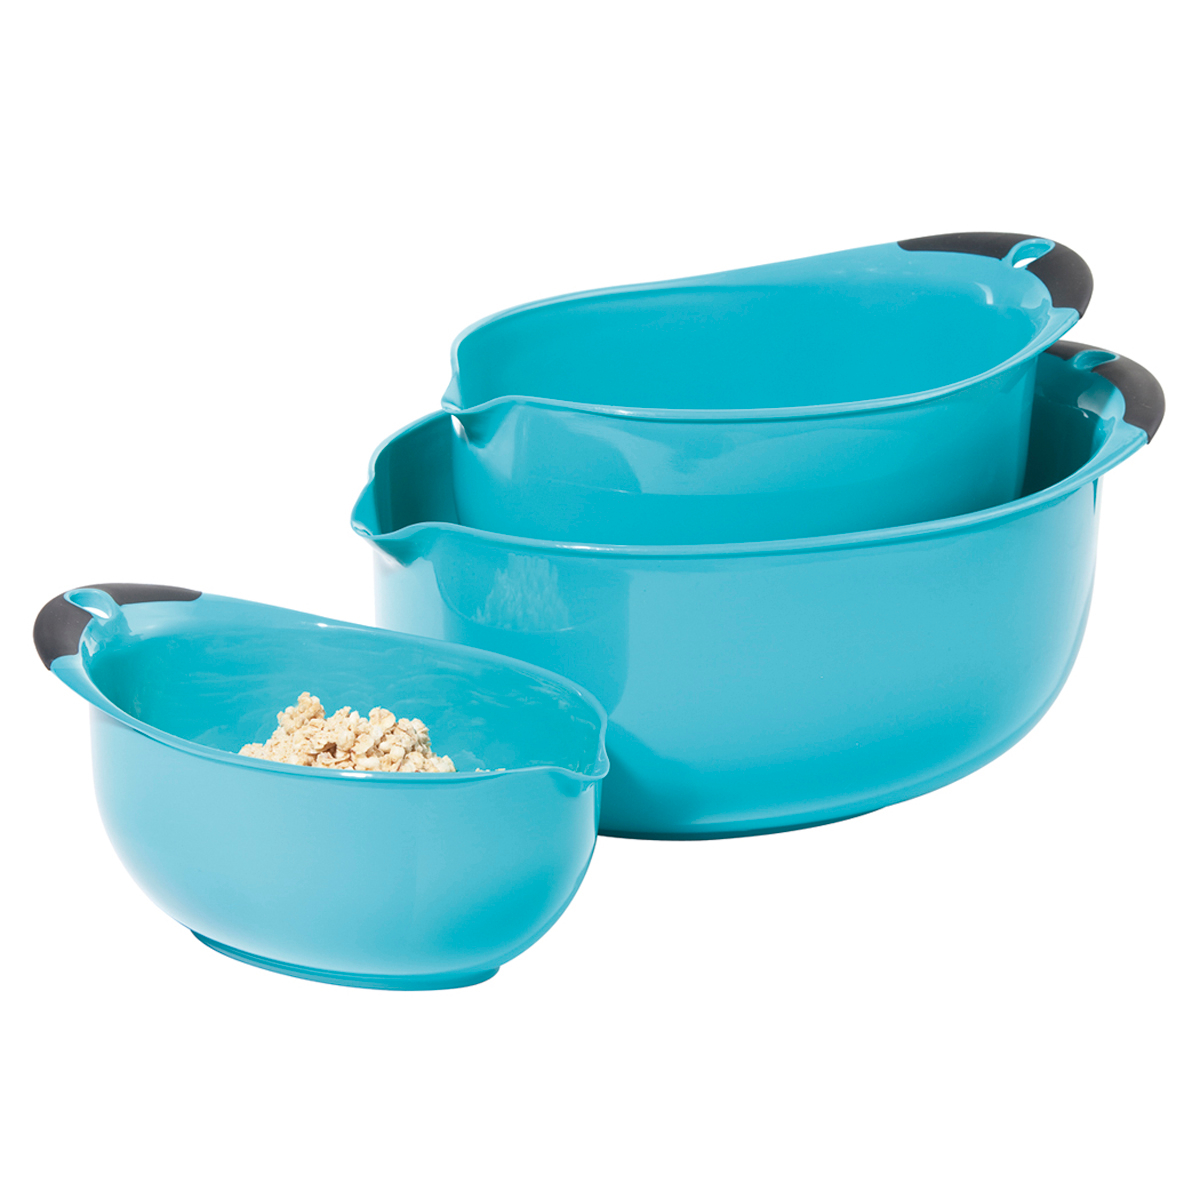 OGGI Aqua 3 Piece Mixing Bowl Set